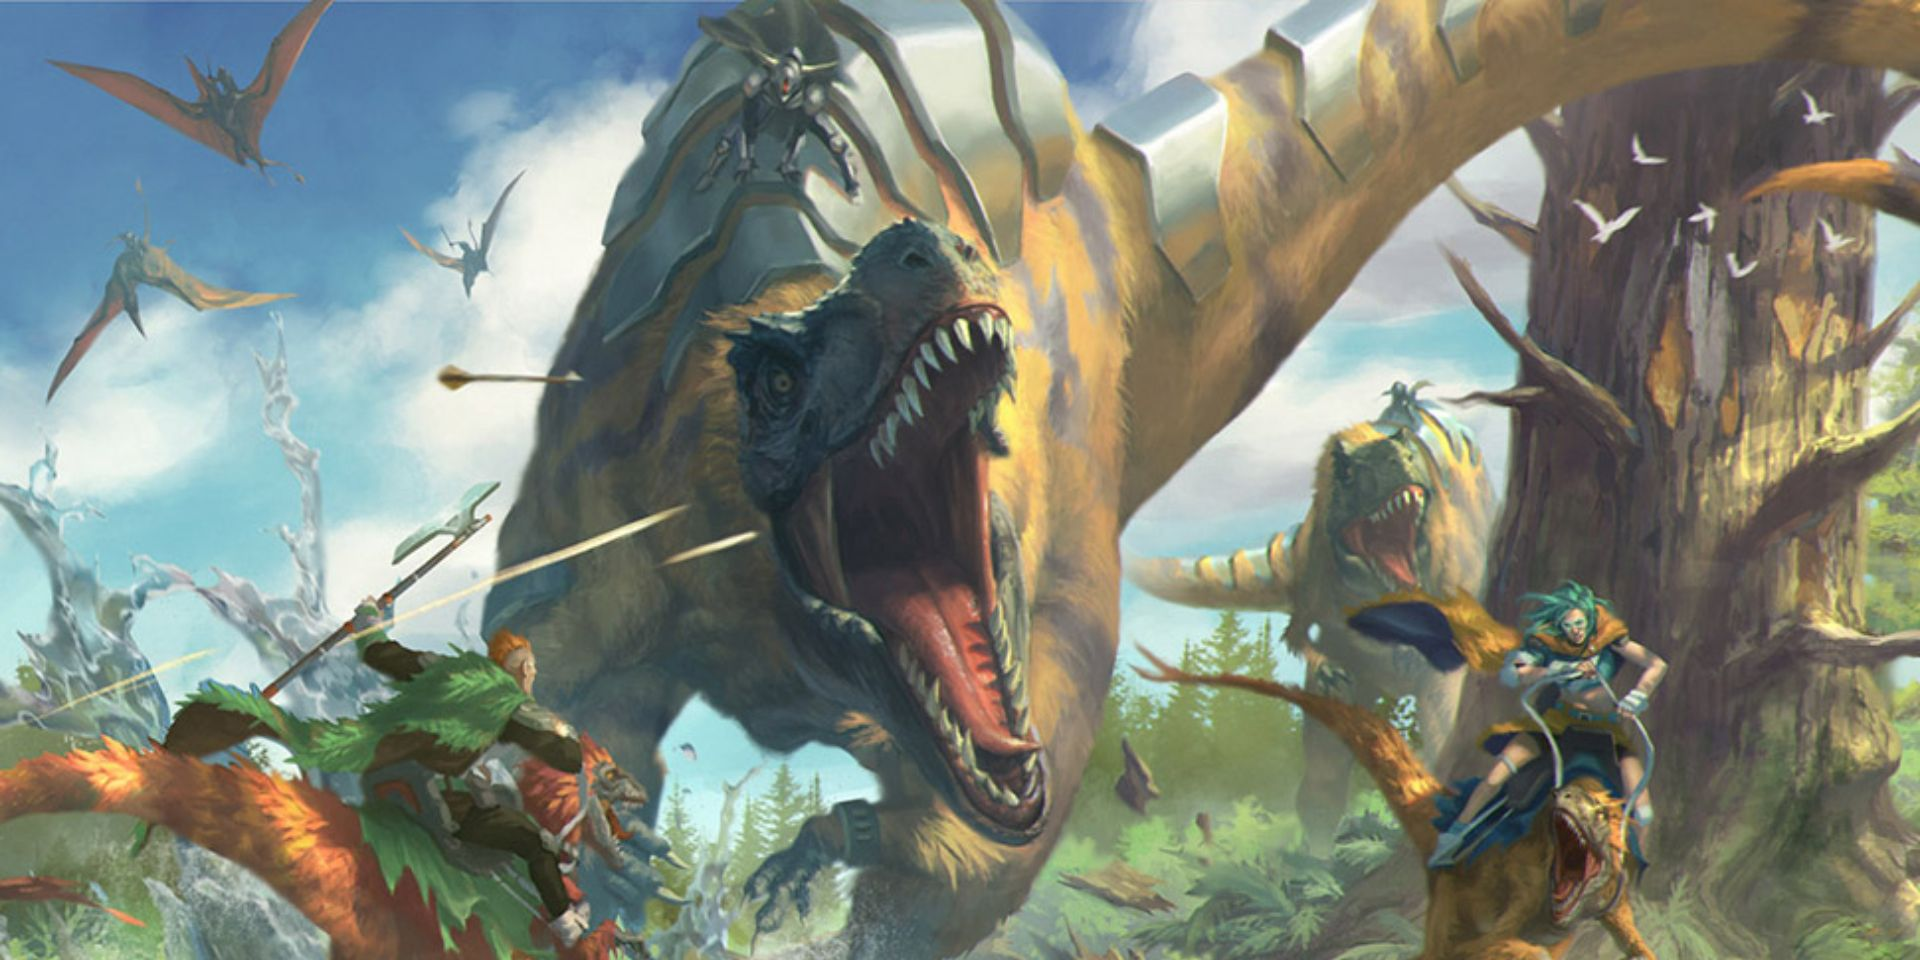 Dinosaur RPG games with Jurassic Park style settings